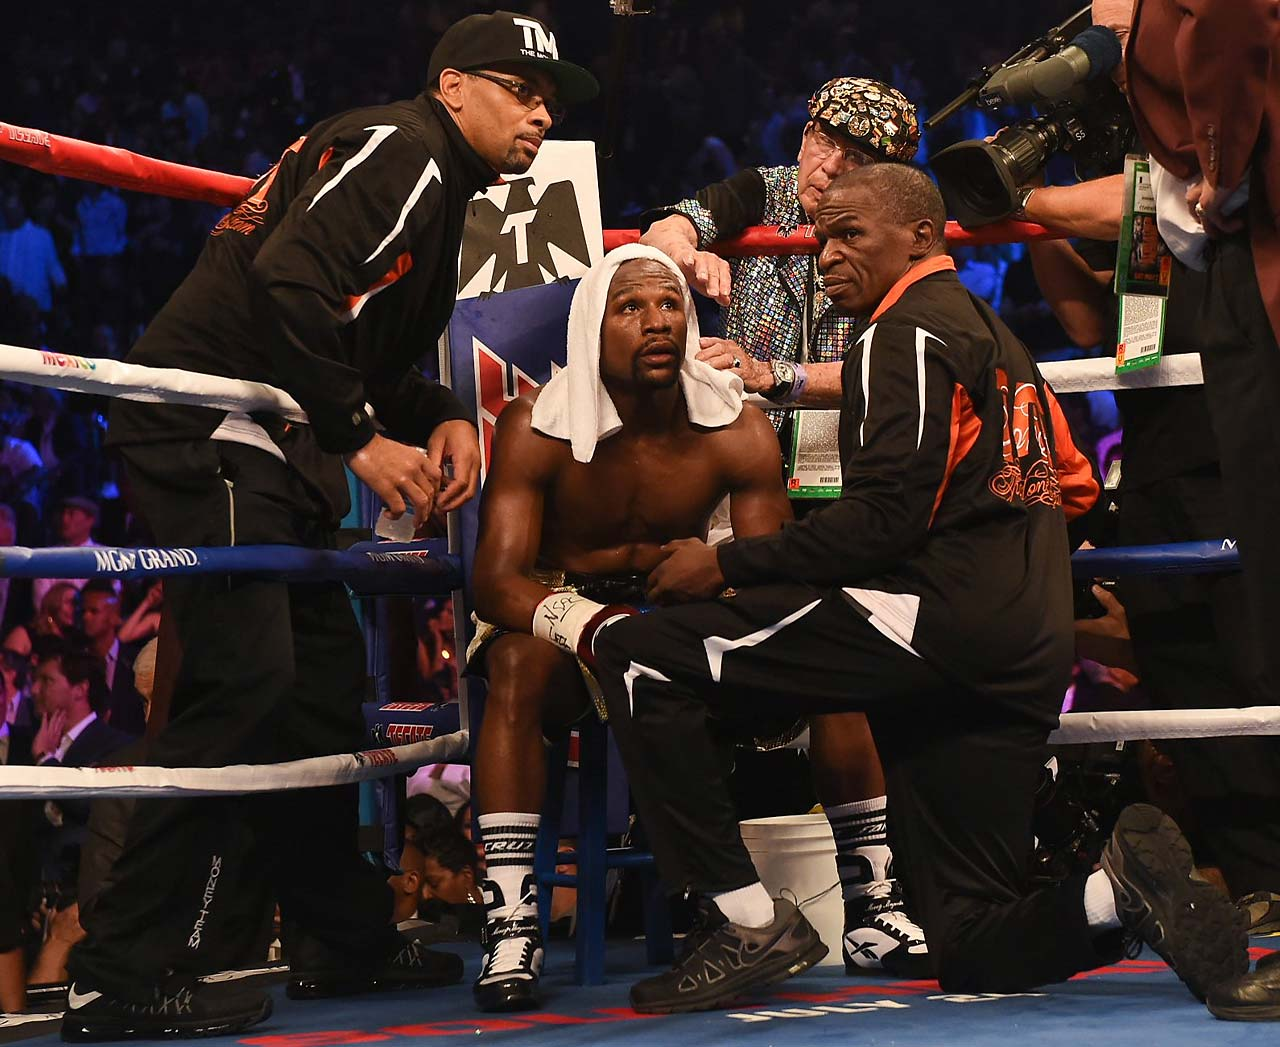 In the corner, Mayweather's father kept yelling at his son to do more. But Mayweather was content to stick with what was working and not take a risk that could cost him the fight. (AP)